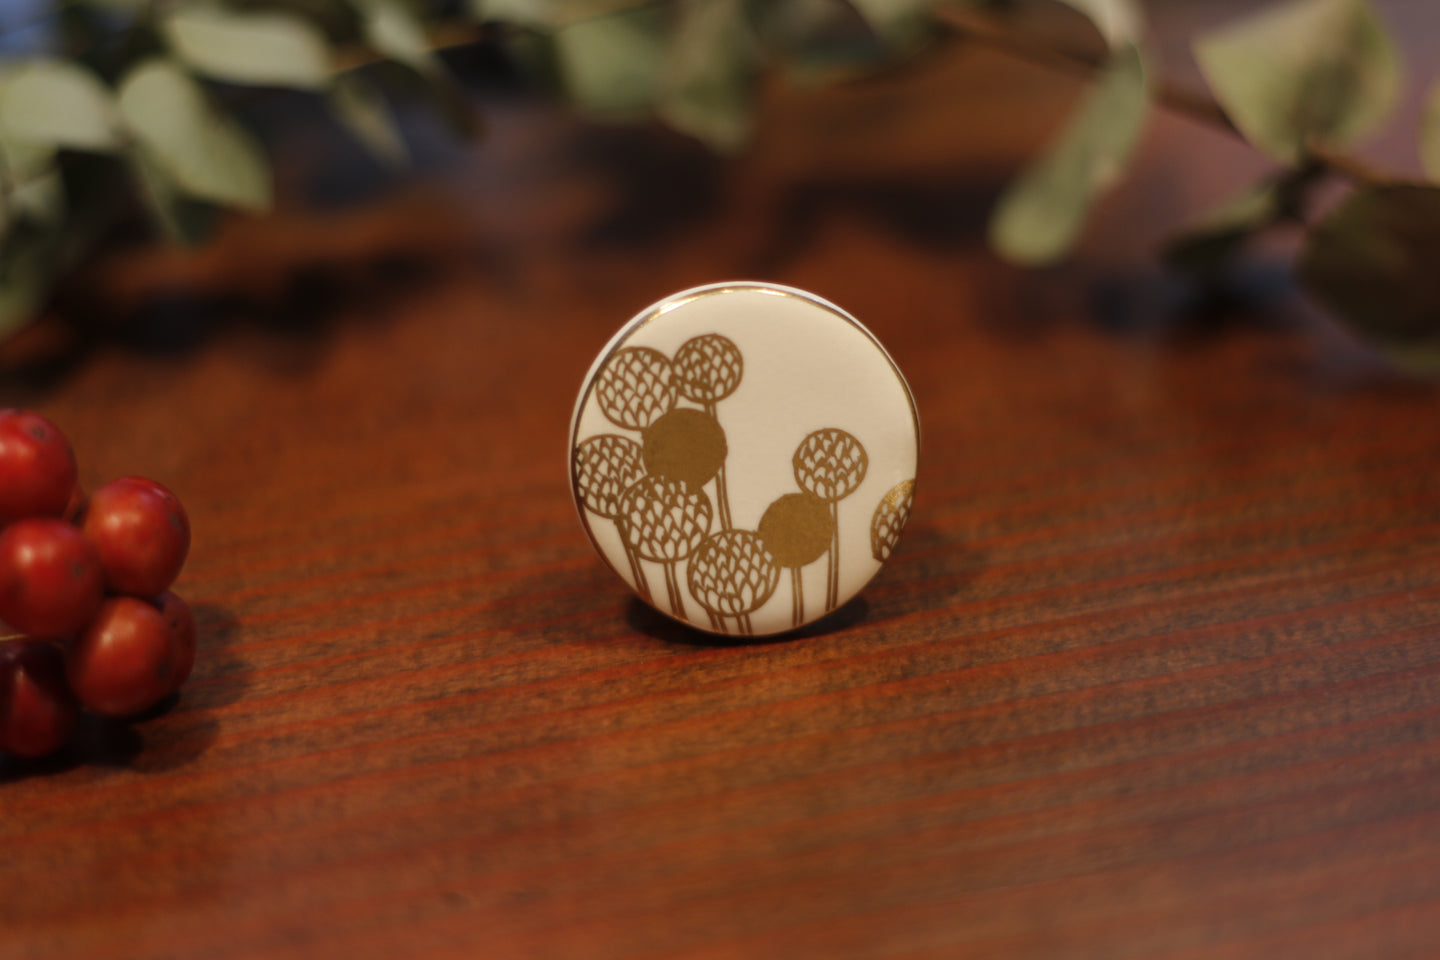 migiwa motohashi pottary accessories Round-brooch MMBR01